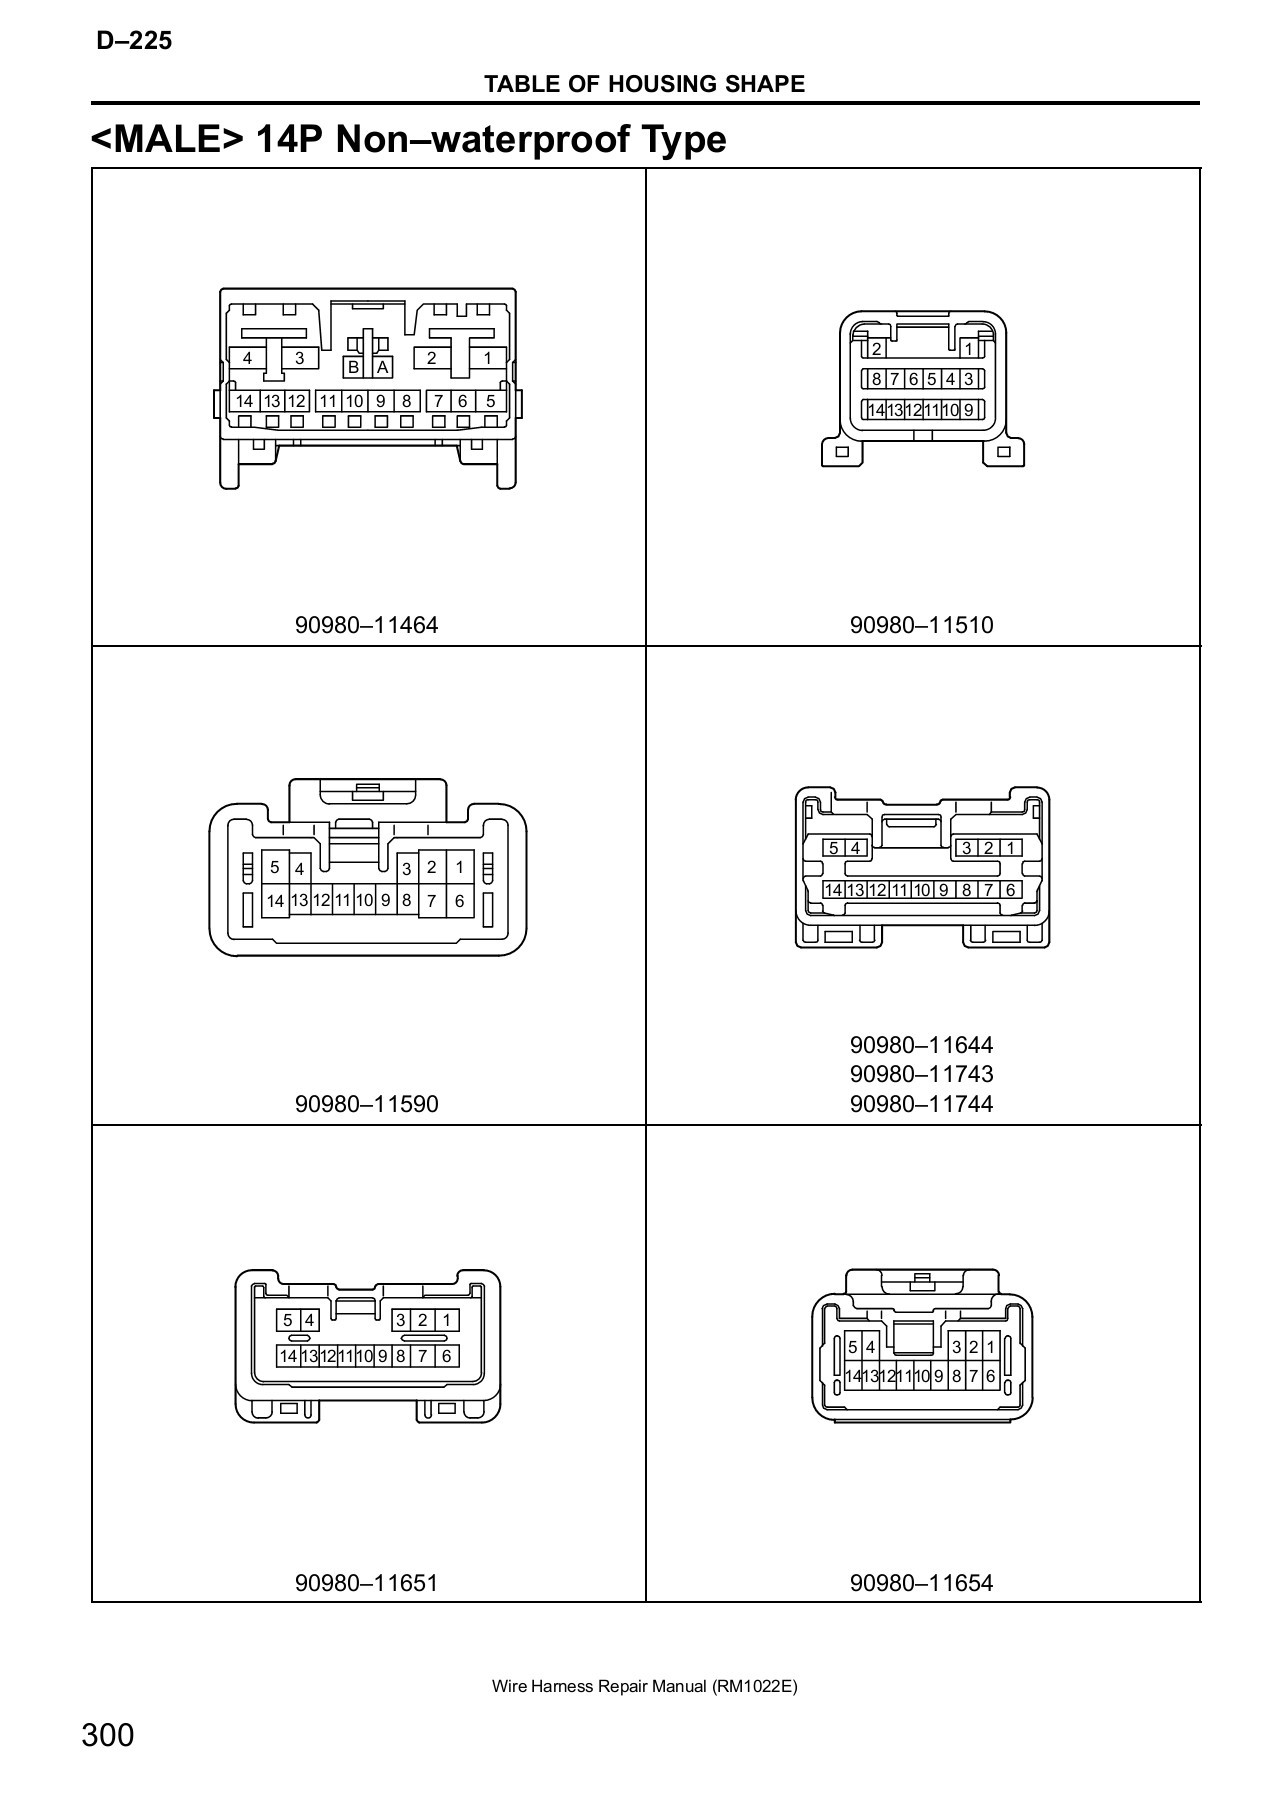 toyota wiring repair manual pdfdrive com pages 301 350 text version fliphtml5 [ 1272 x 1800 Pixel ]